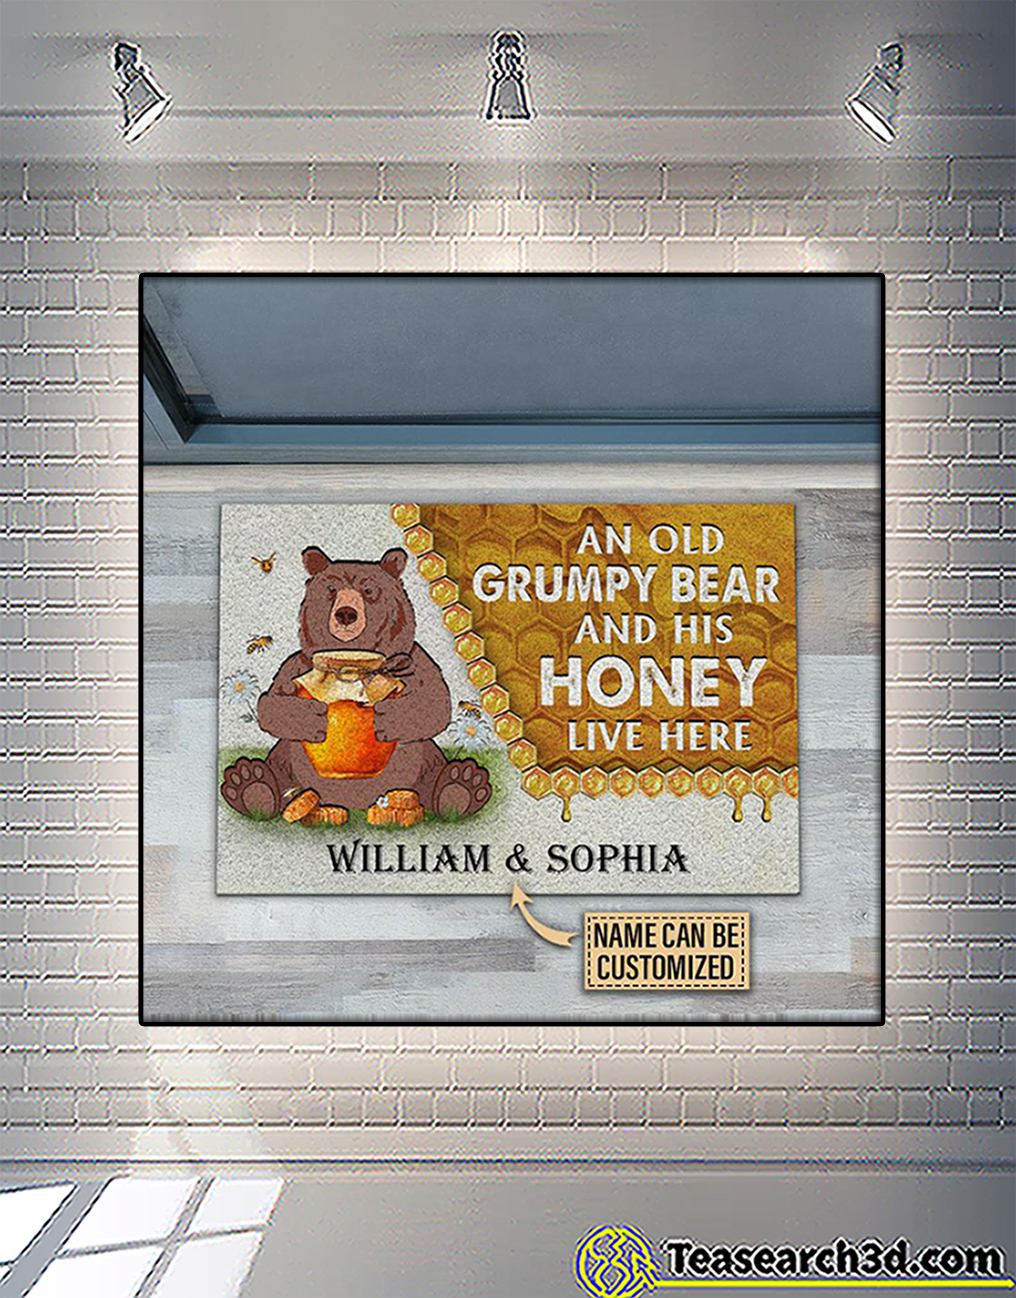 Personalized custom name an old grumpy bear and his honey live here doormat 1